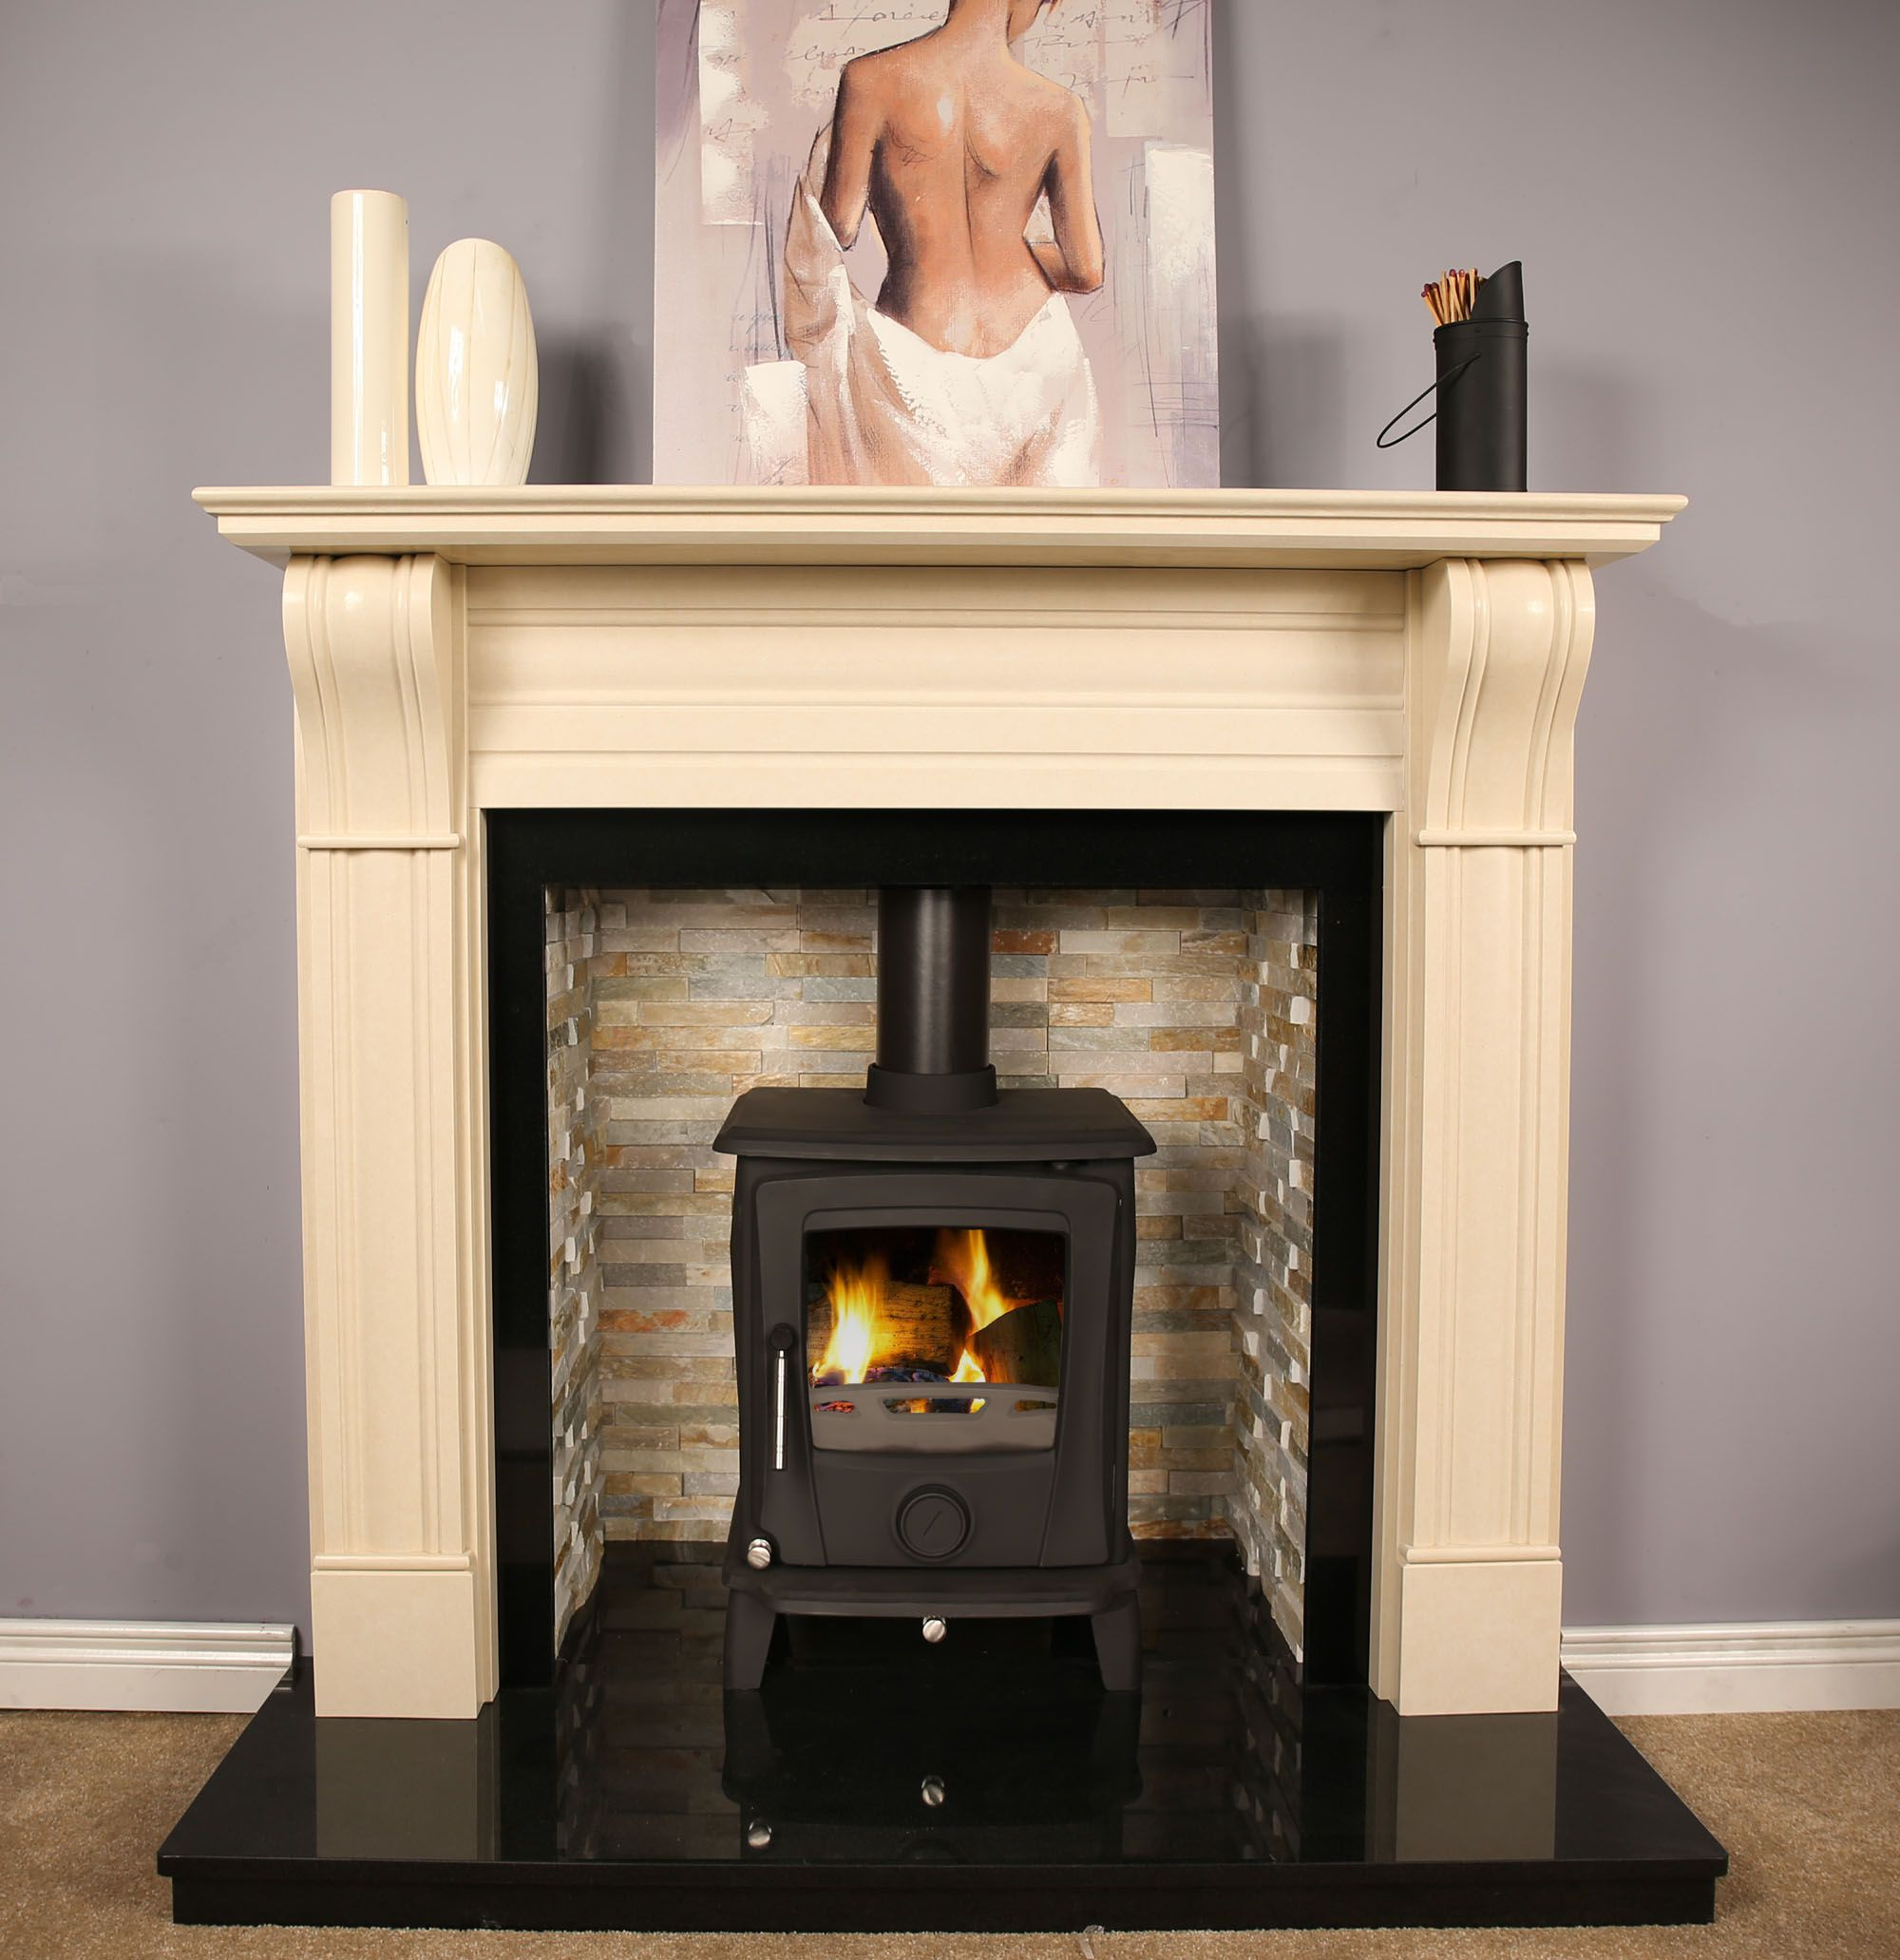 Arizona Seattle Multi Fuel Stove 7.5kw Matt Black (http://www.gr8fires.co.uk/arizona-seattle-mf-stove-7-5kw-max/?utm_source=Social&utm_medium=Social) with the Dublin cream fireplace surround (http://www.gr8fires.co.uk/dublin-60-corbel-crema-marfil-firepla